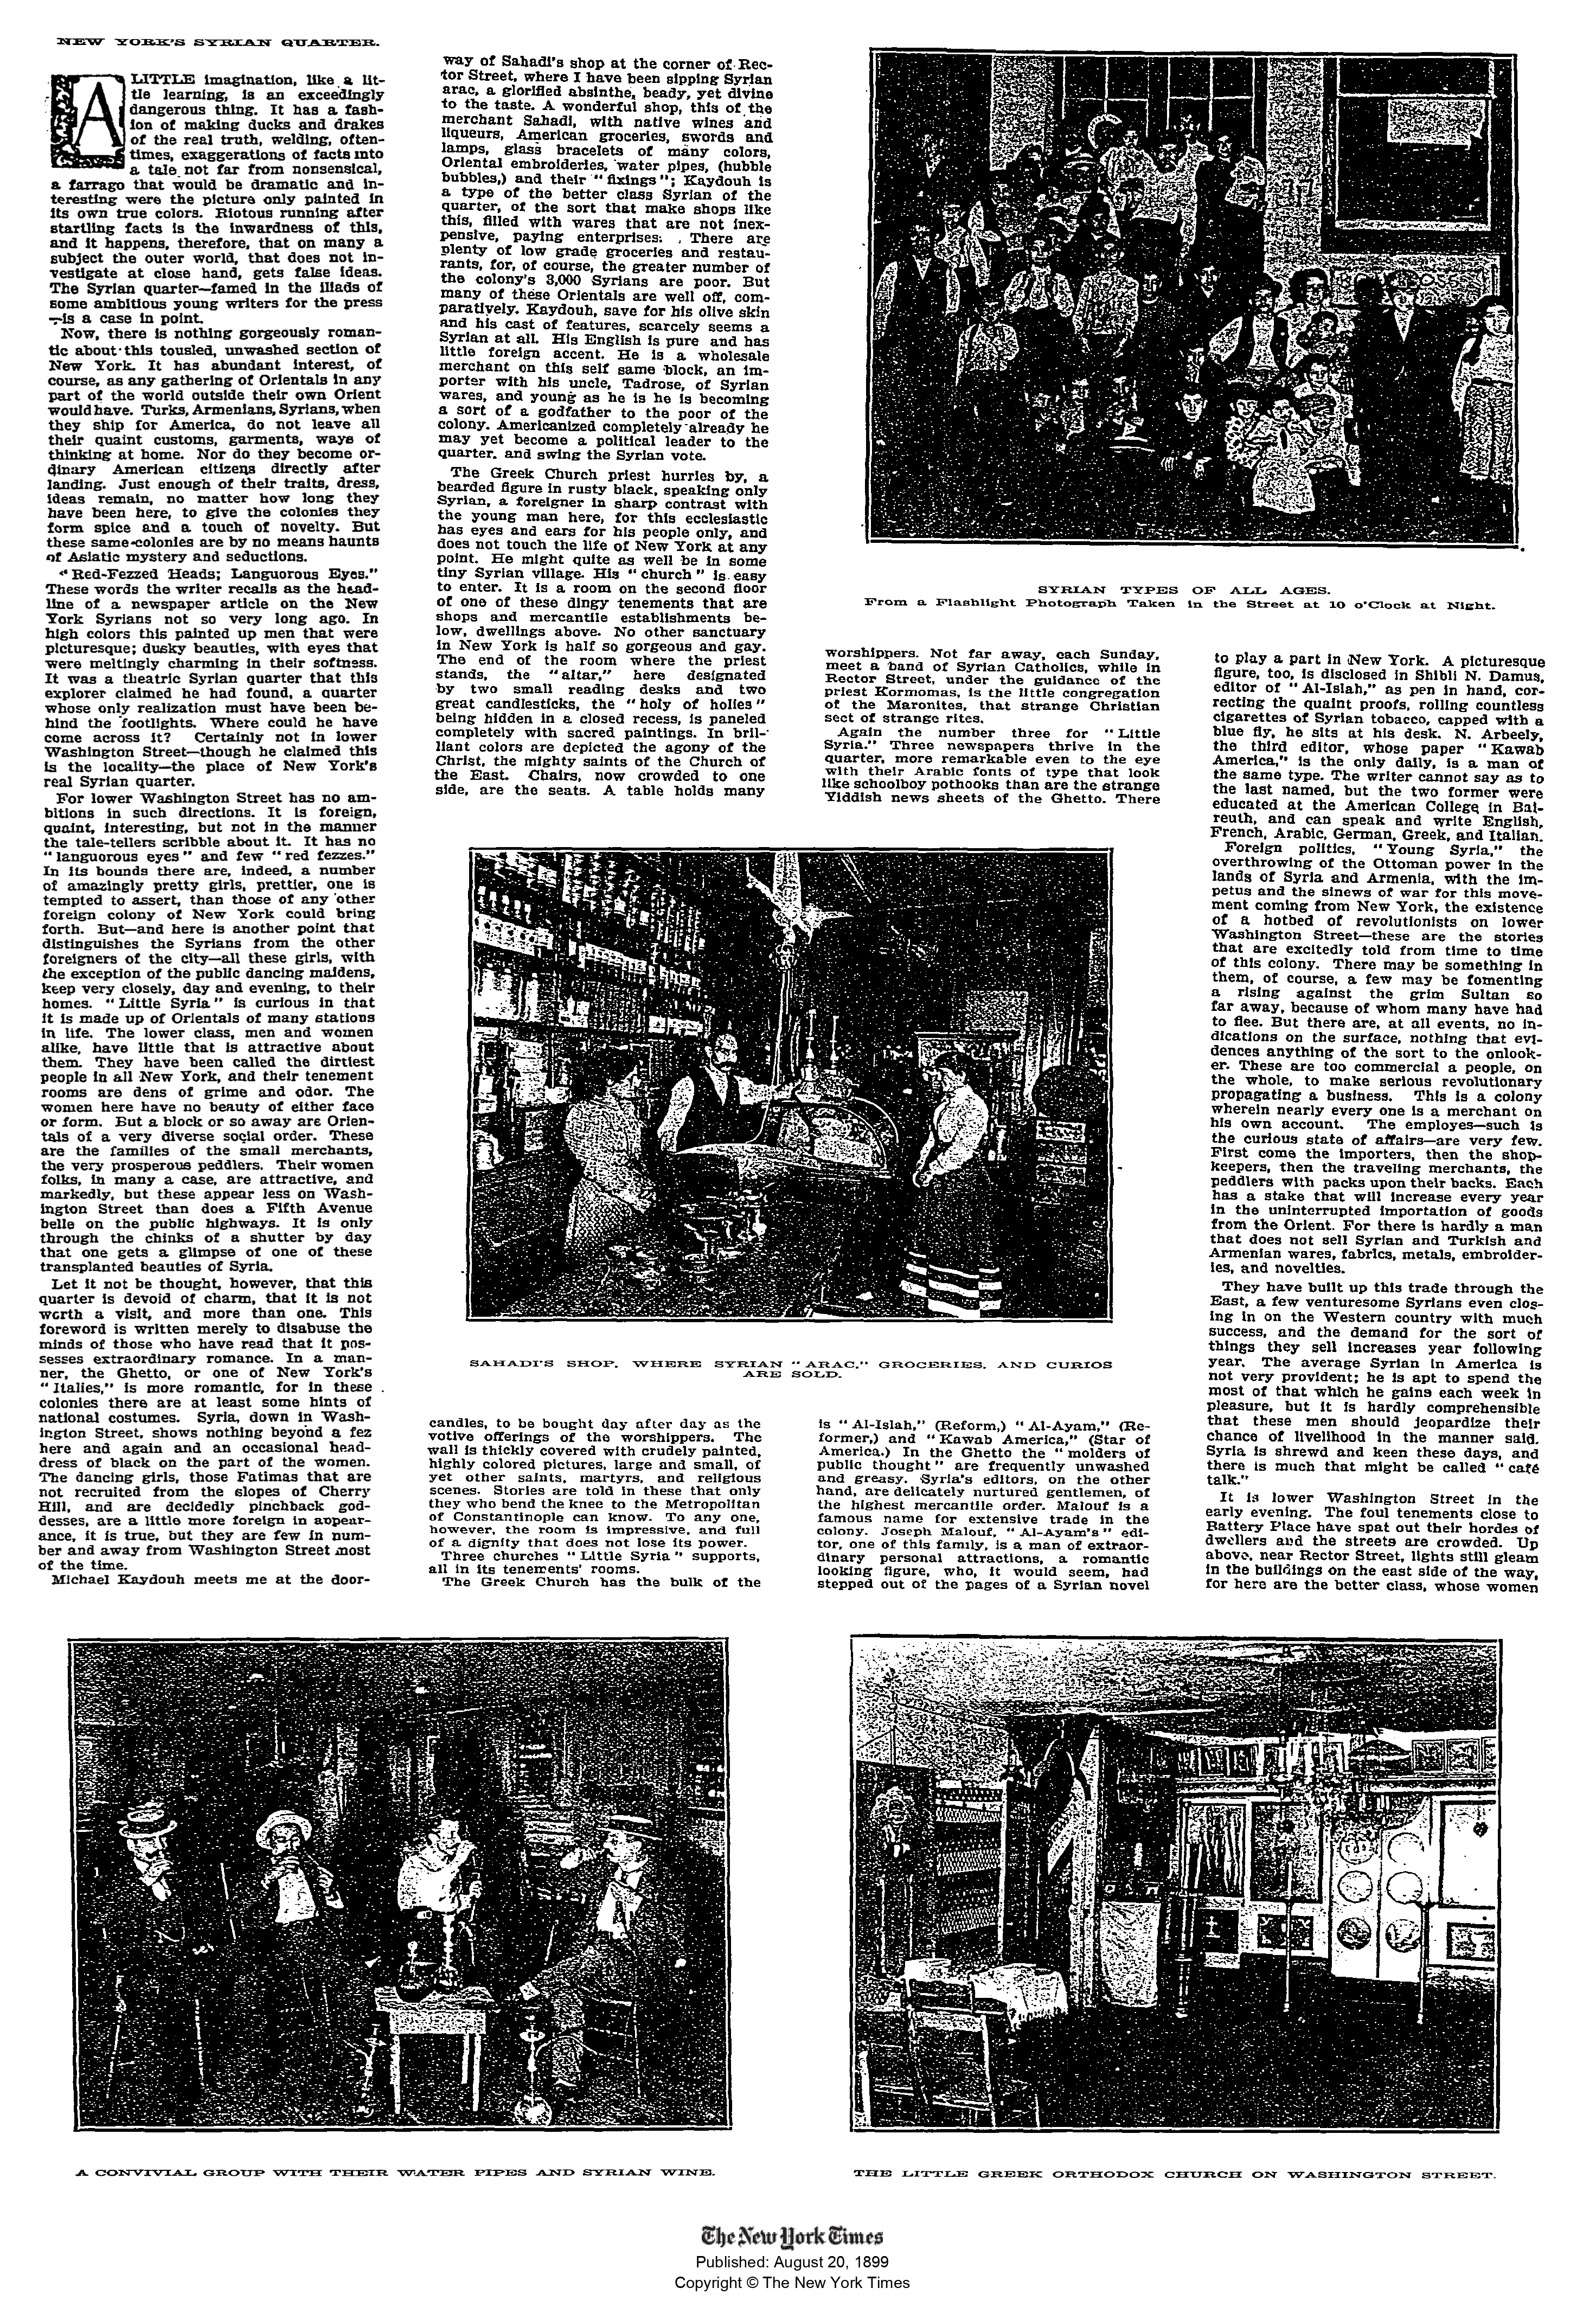 "Cromwell Childe, ""New York's Syrian Quarter"", The New York Times, August 20, 1899."